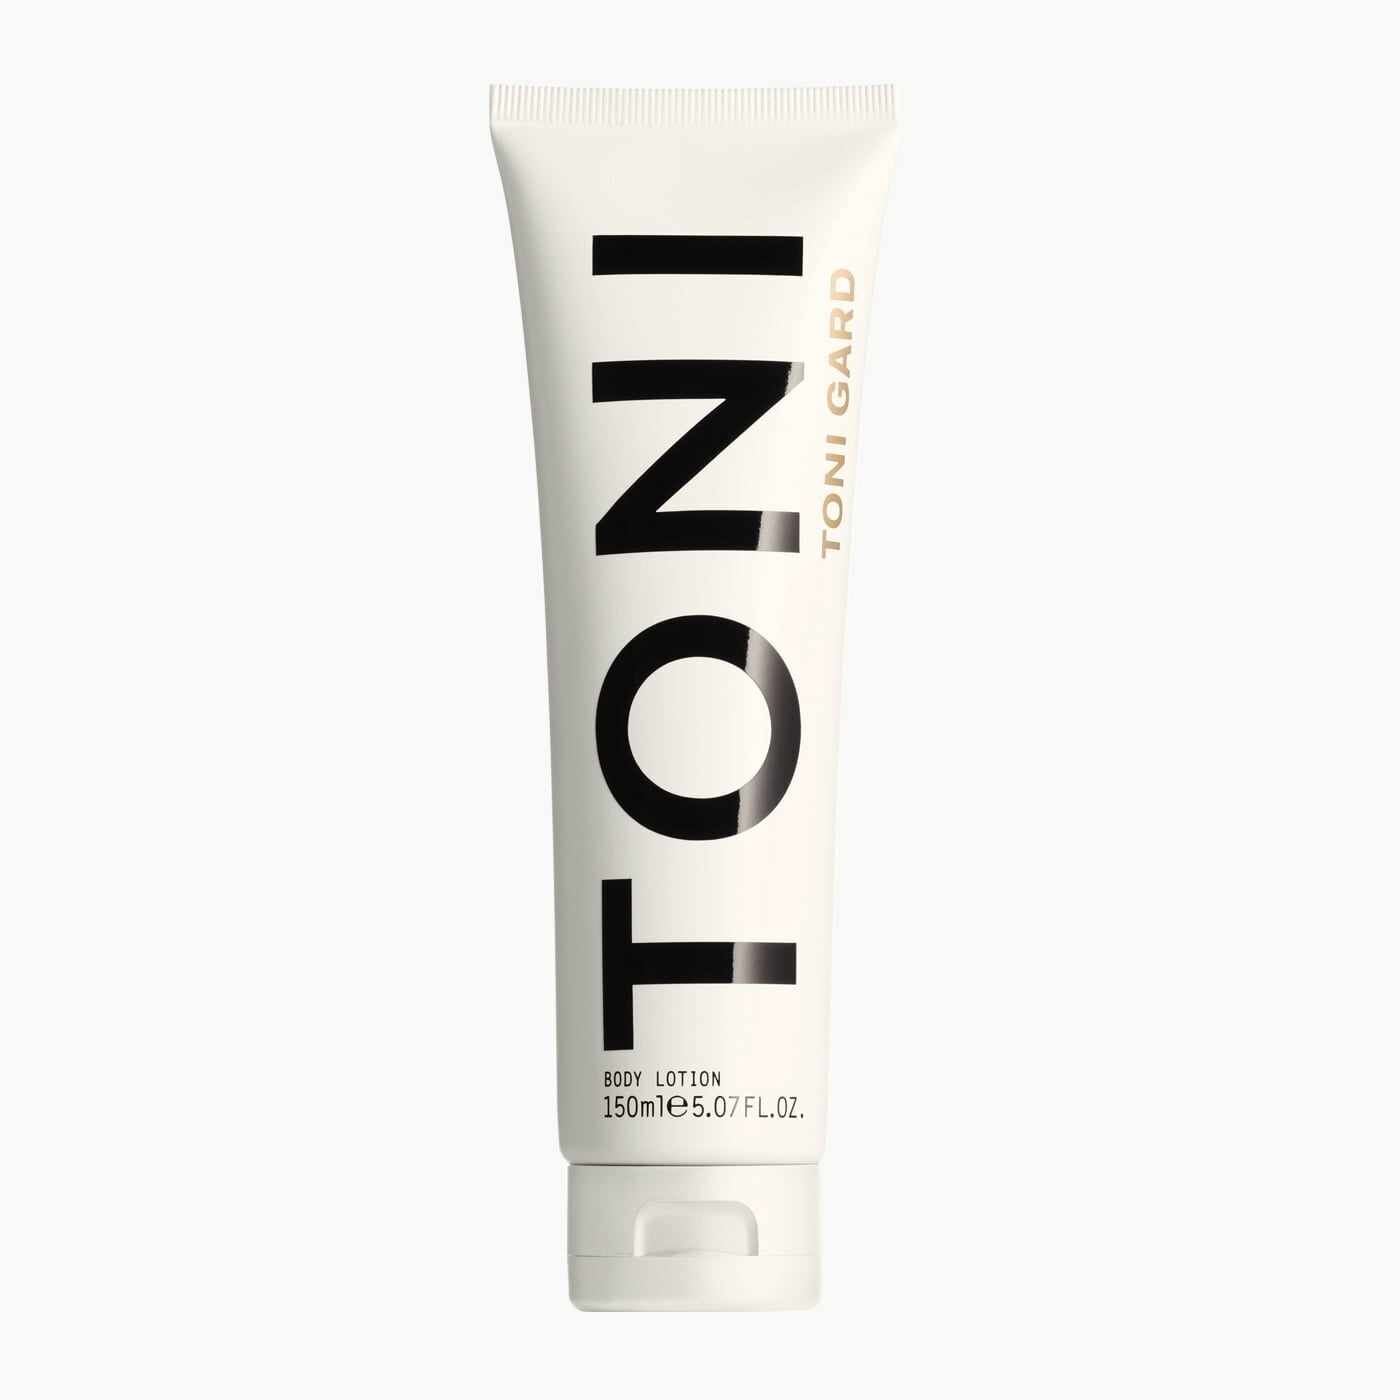 TONI FOR WOMAN Body Lotion / 150 ML